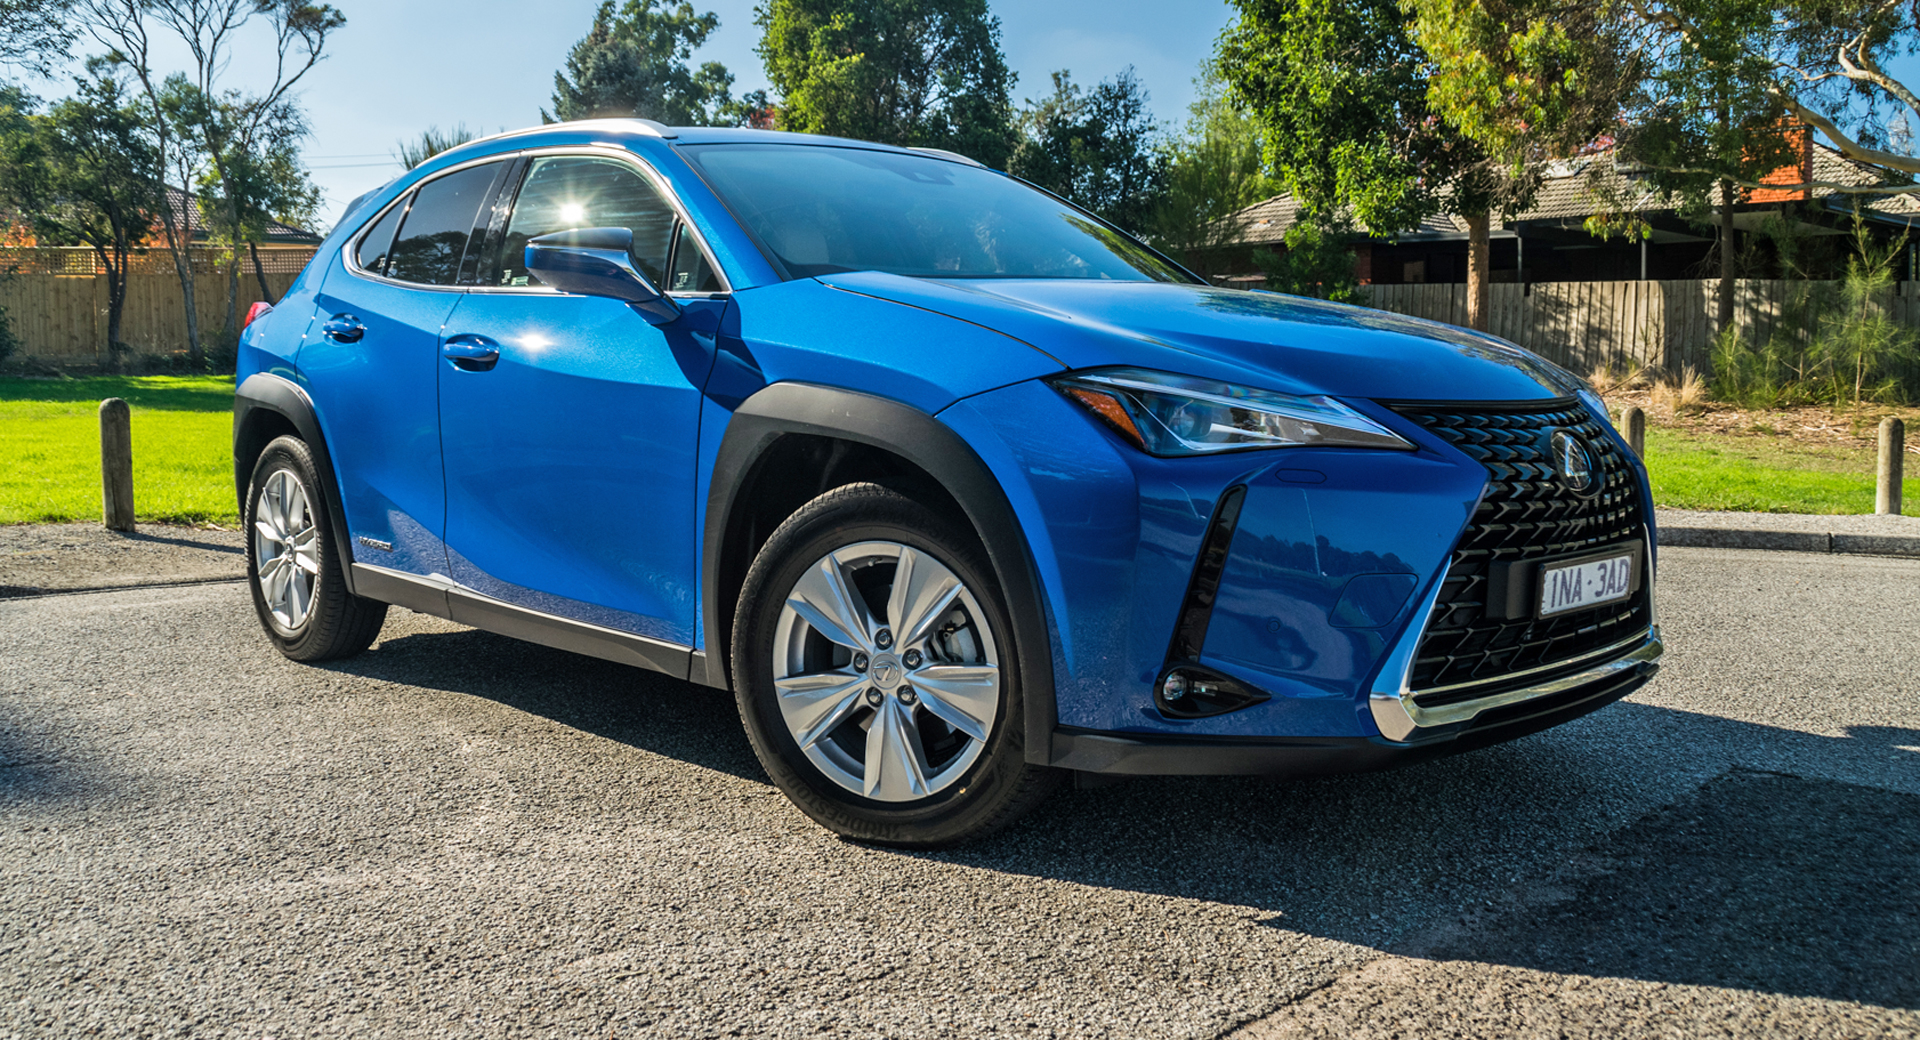 Driven: 2019 Lexus UX250h Is Edgy. Efficient And Engaging | Carscoops